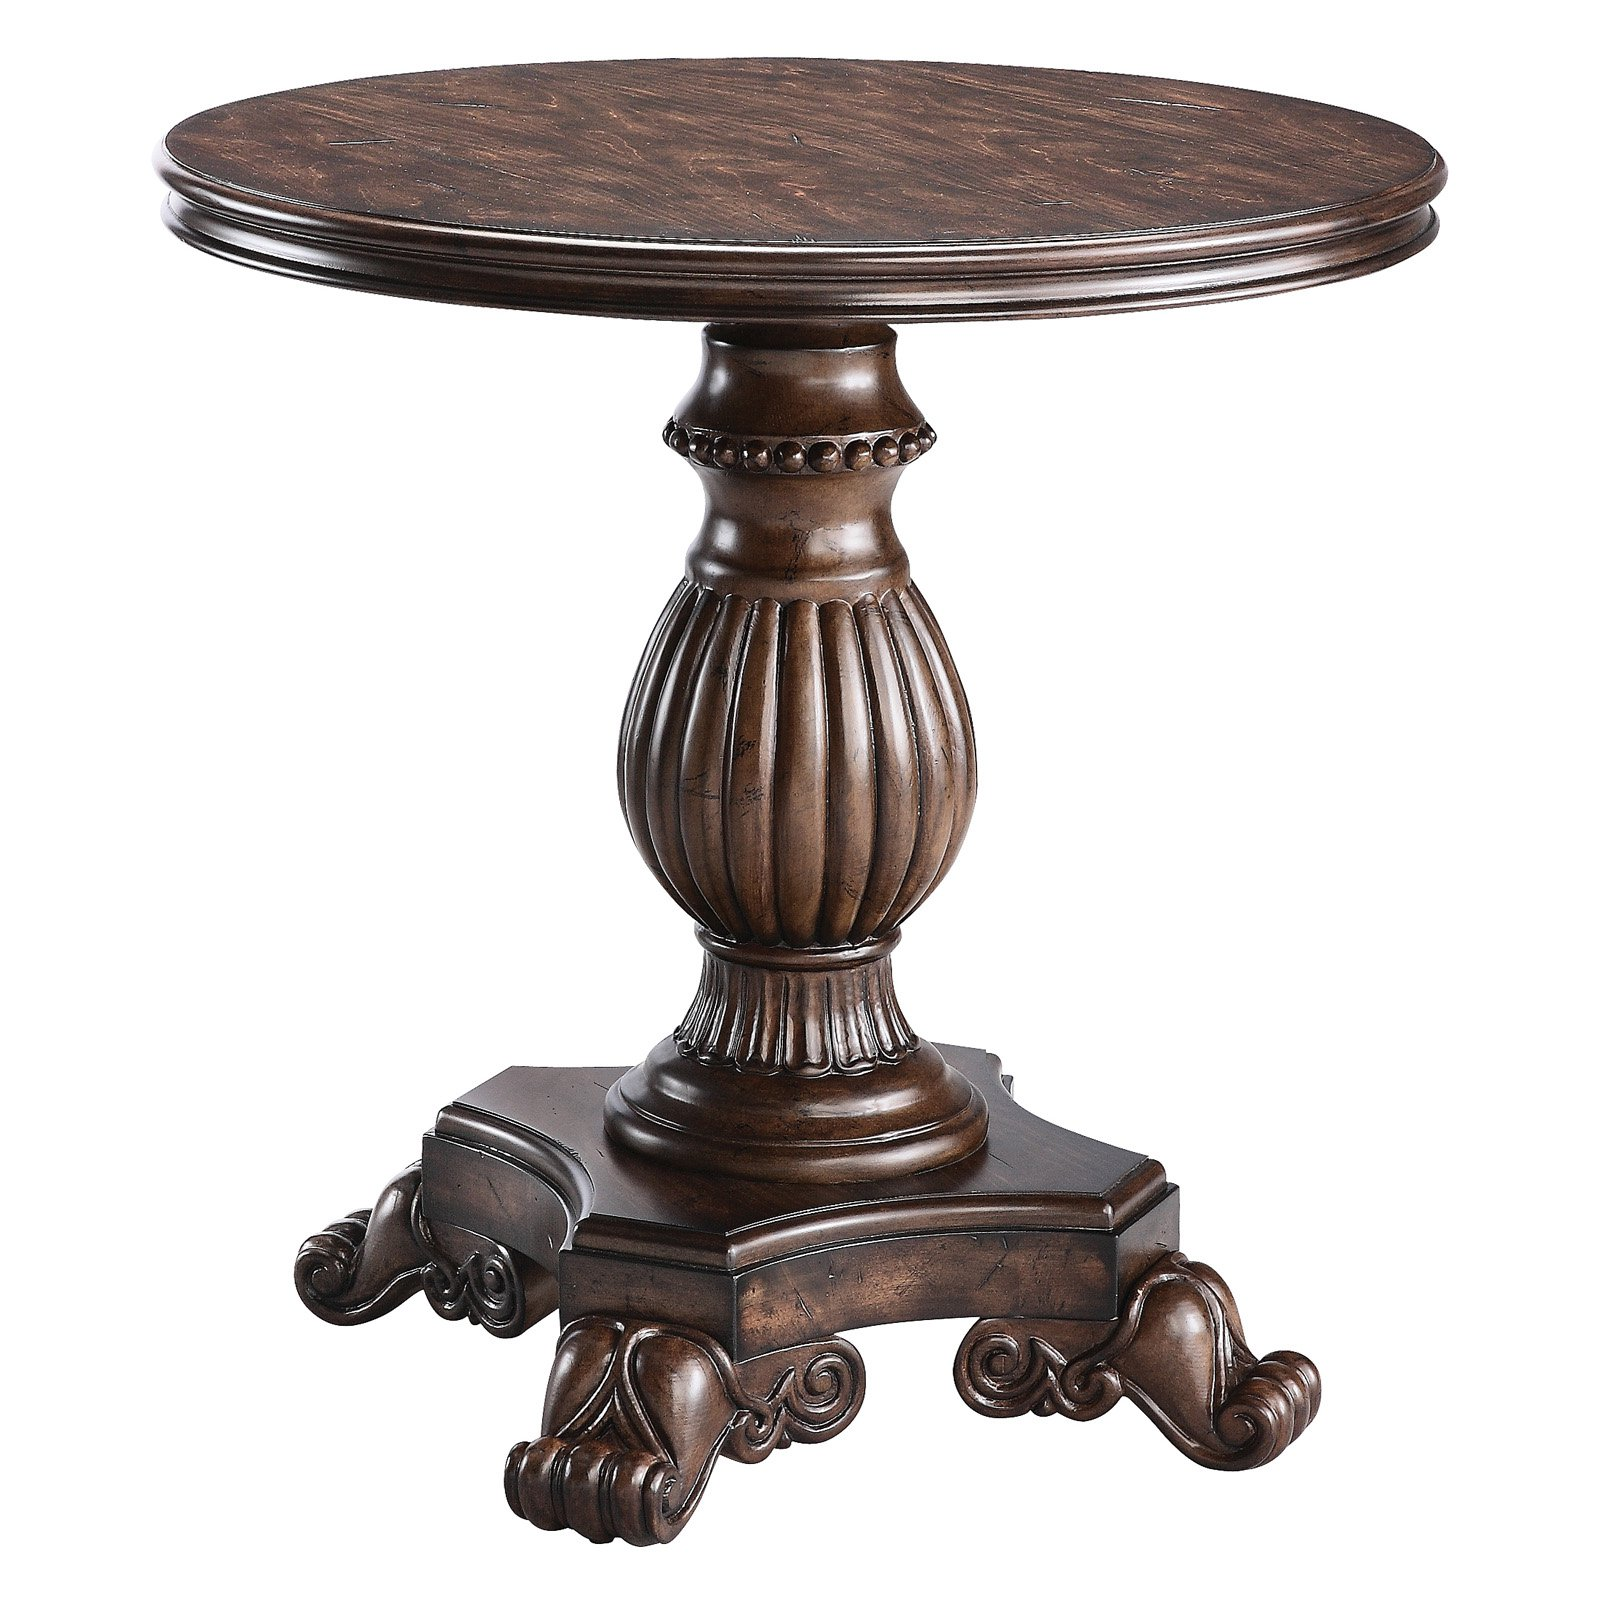 stein world round pedestal reclaimed table dark end half moon accent antique small threshold bars for laminate flooring mango dining ceramic lamp low marble coffee patio furniture